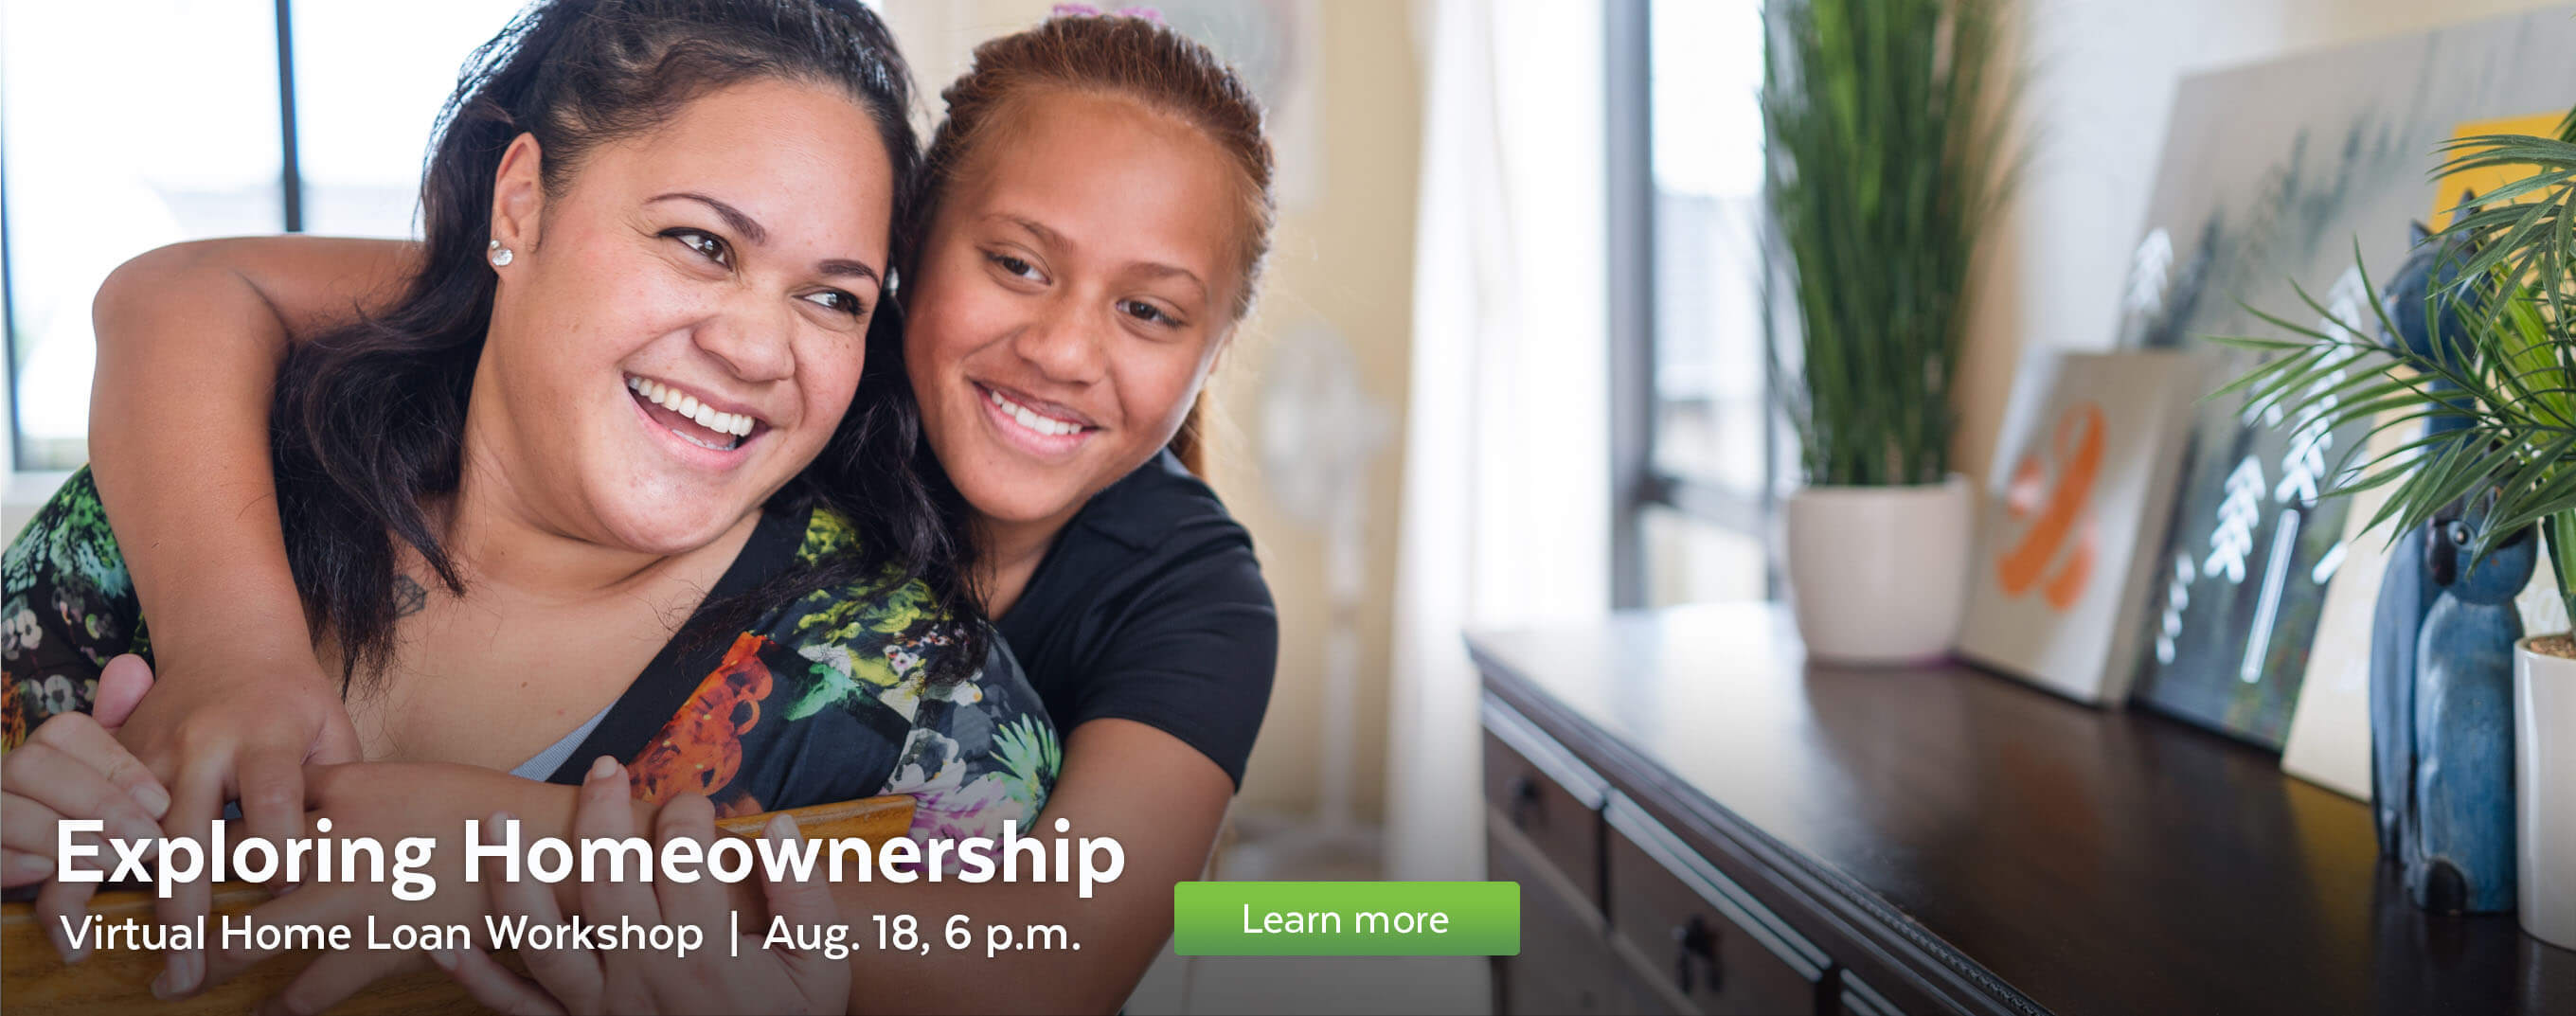 Attend the Exploring Homeownership virtual workshop on August 18.